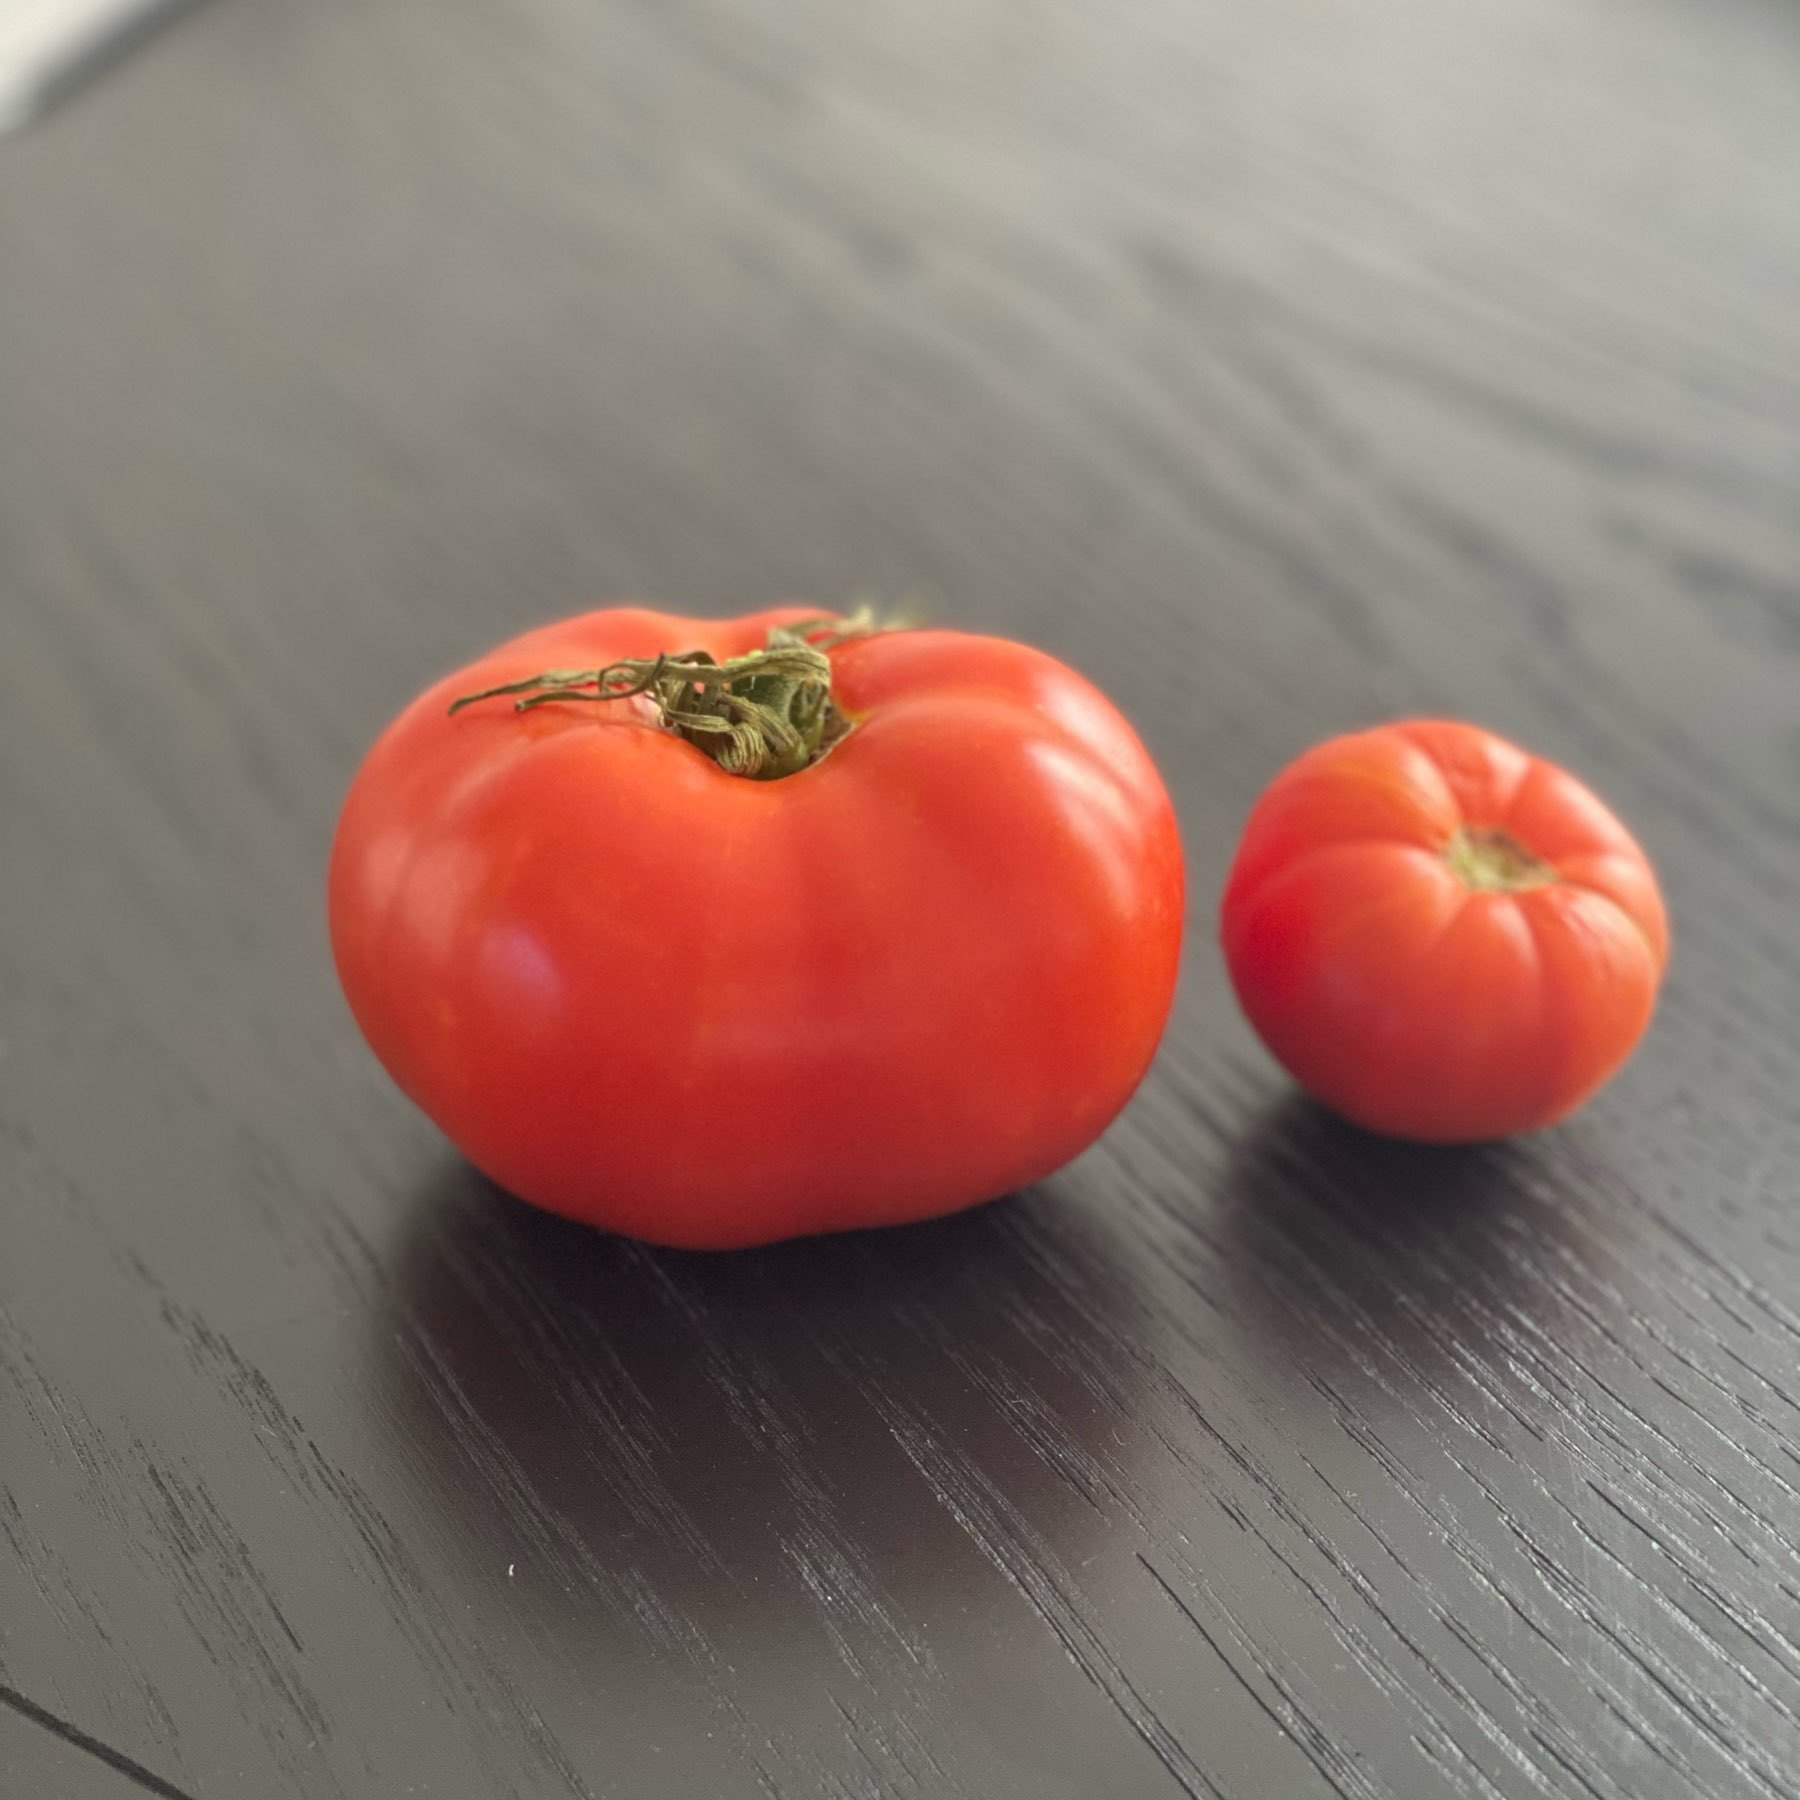 Two ripe tomatoes on a black table.